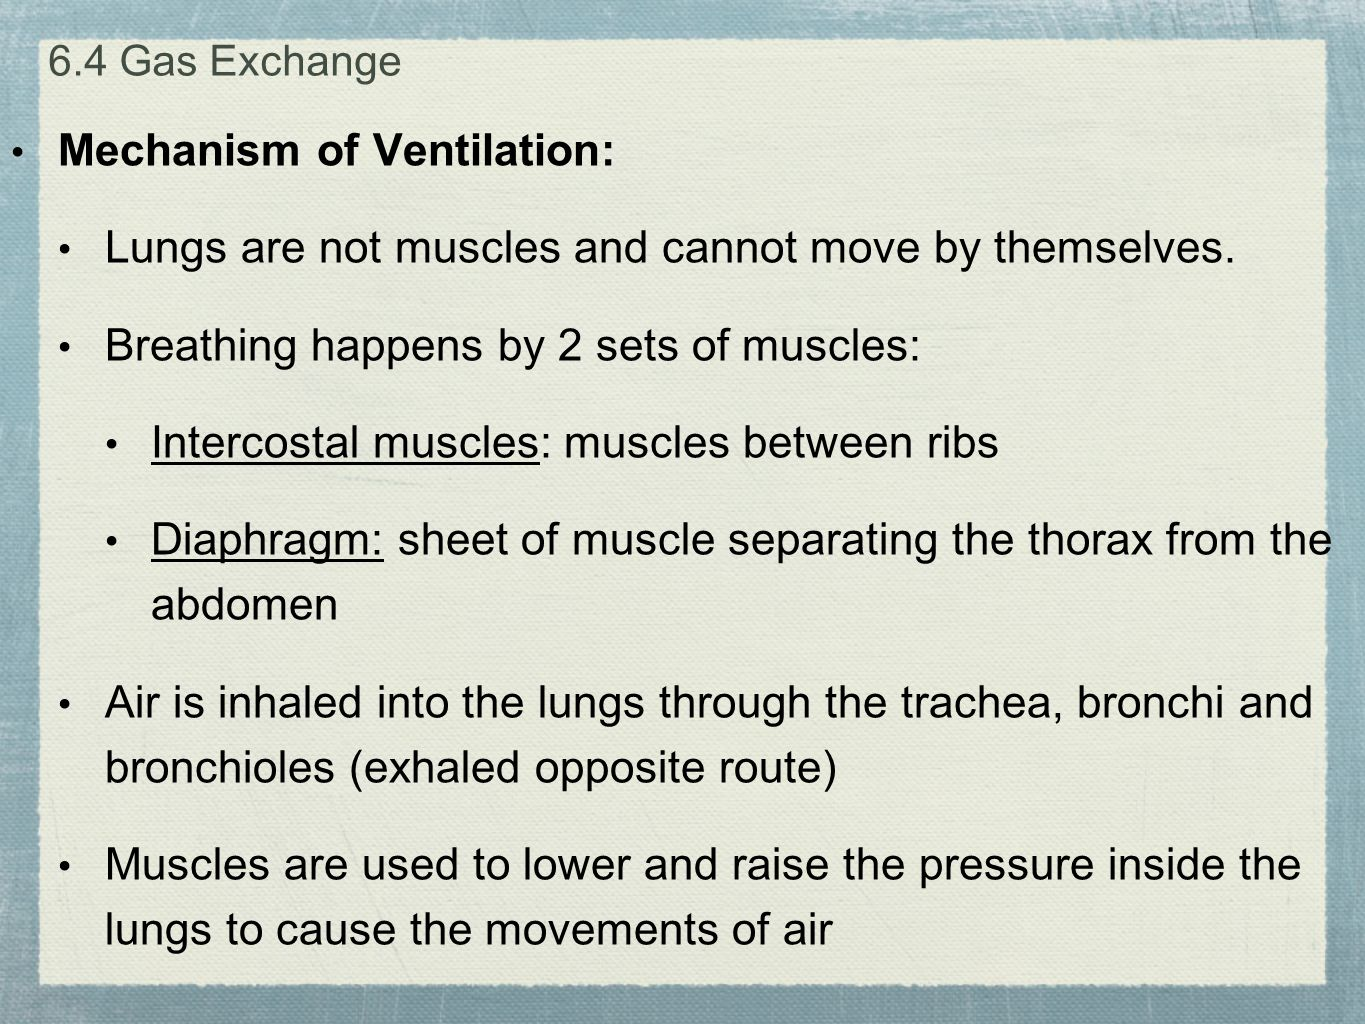 Mechanism of Ventilation: